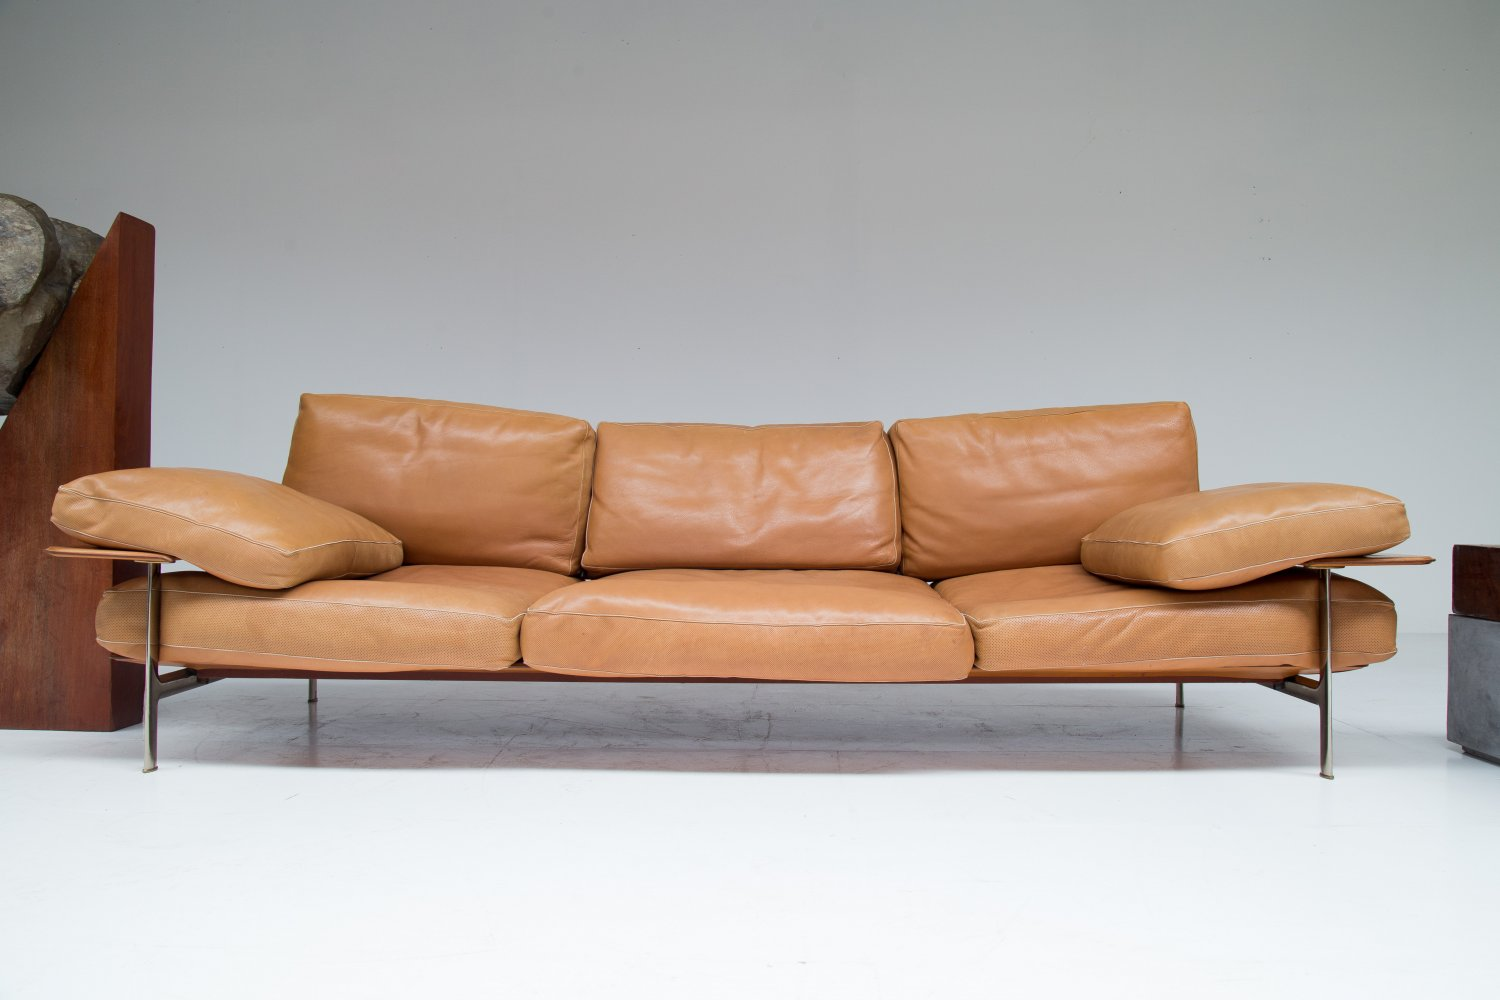 'Diesis' three seater sofa